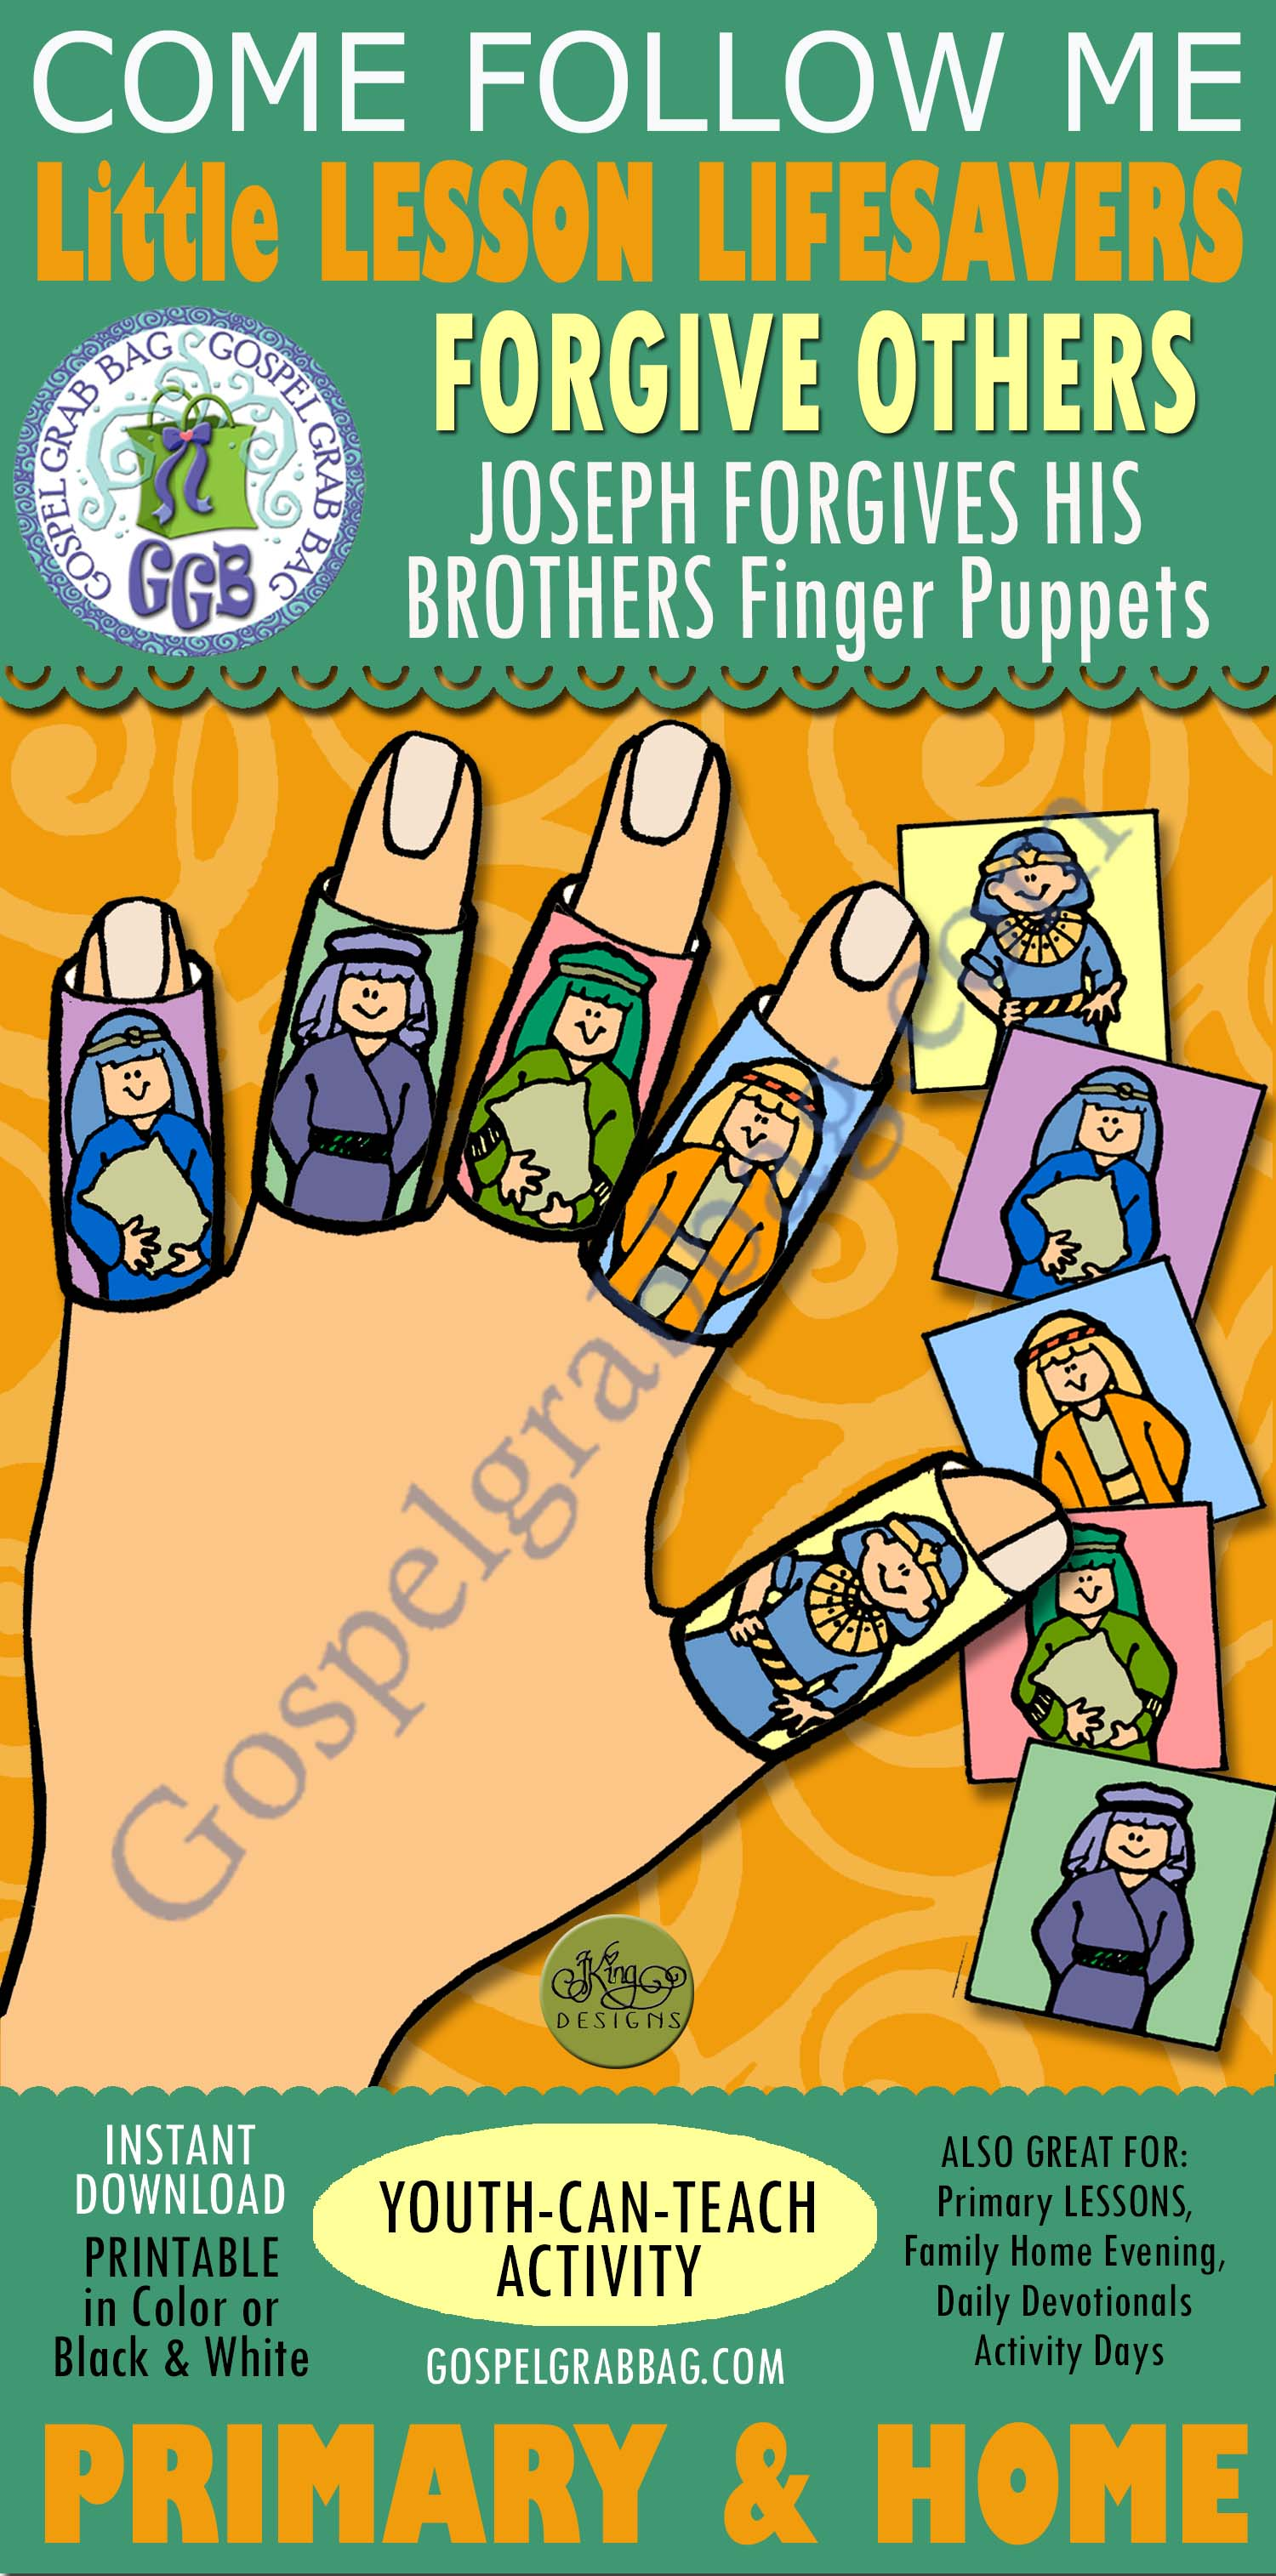 Forgiveness Activity Joseph Forgives His Brothers Finger Puppets Primary 1